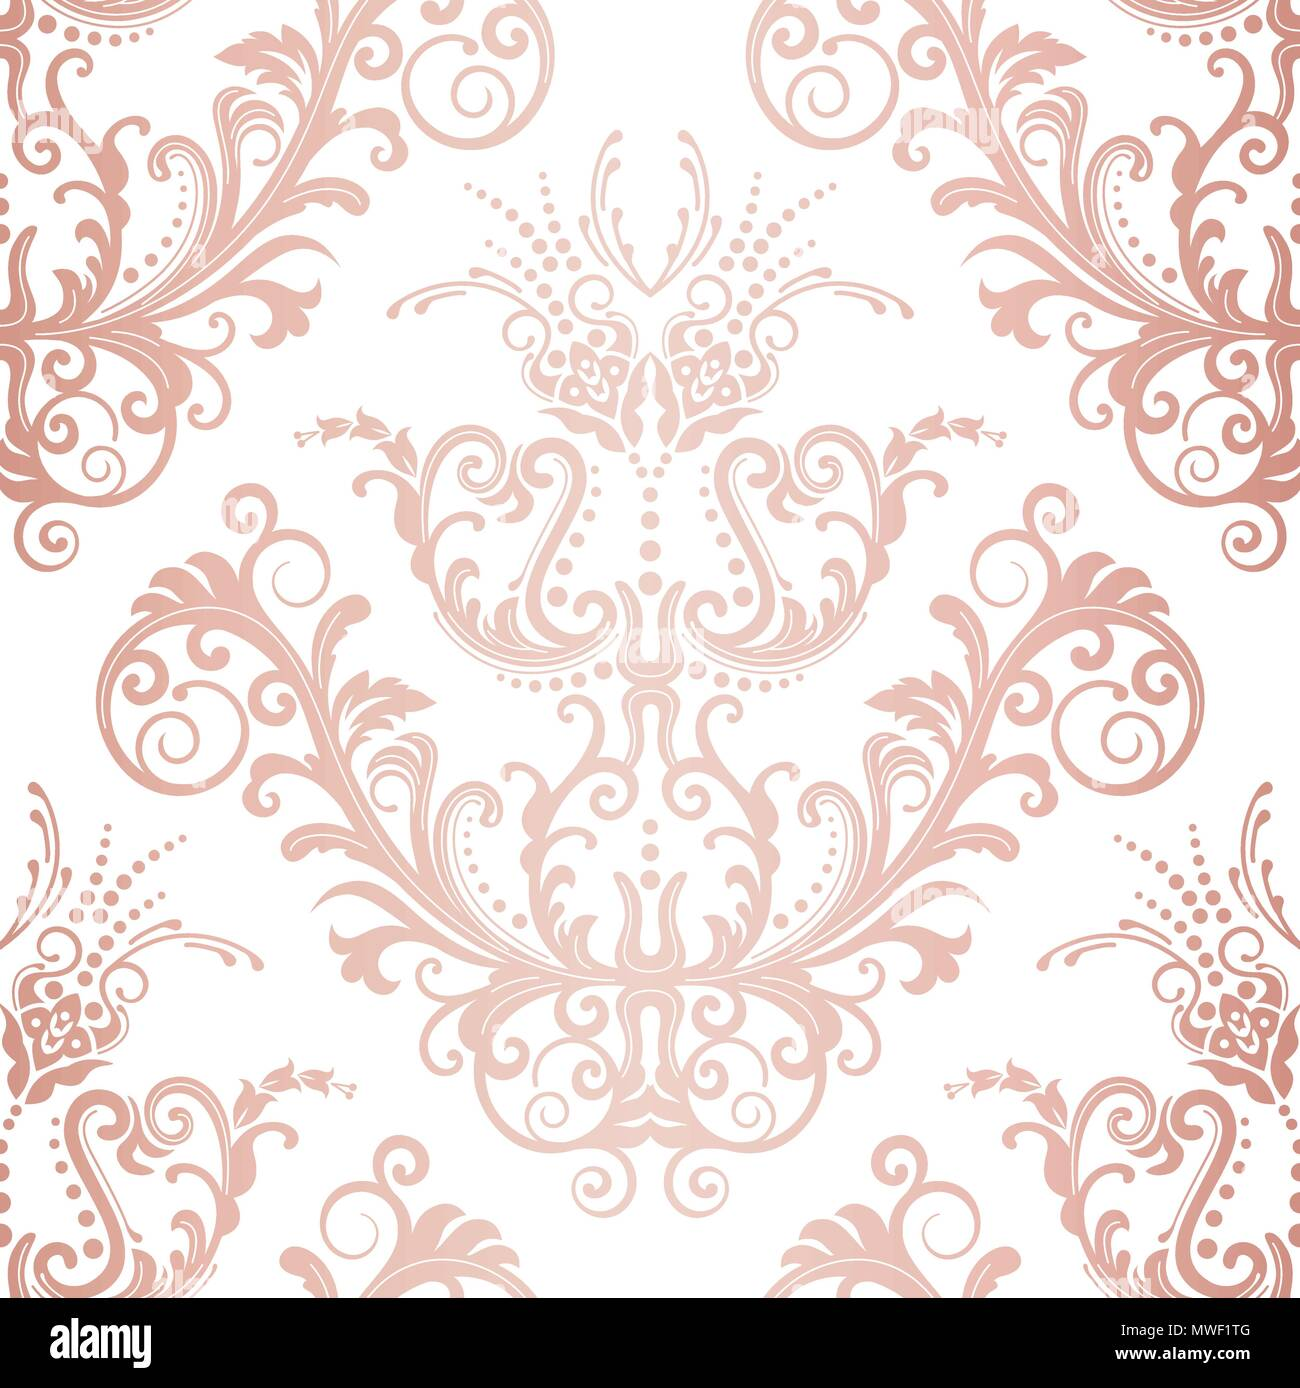 Vintage Wallpaper Floral Daisy Rose by Motif